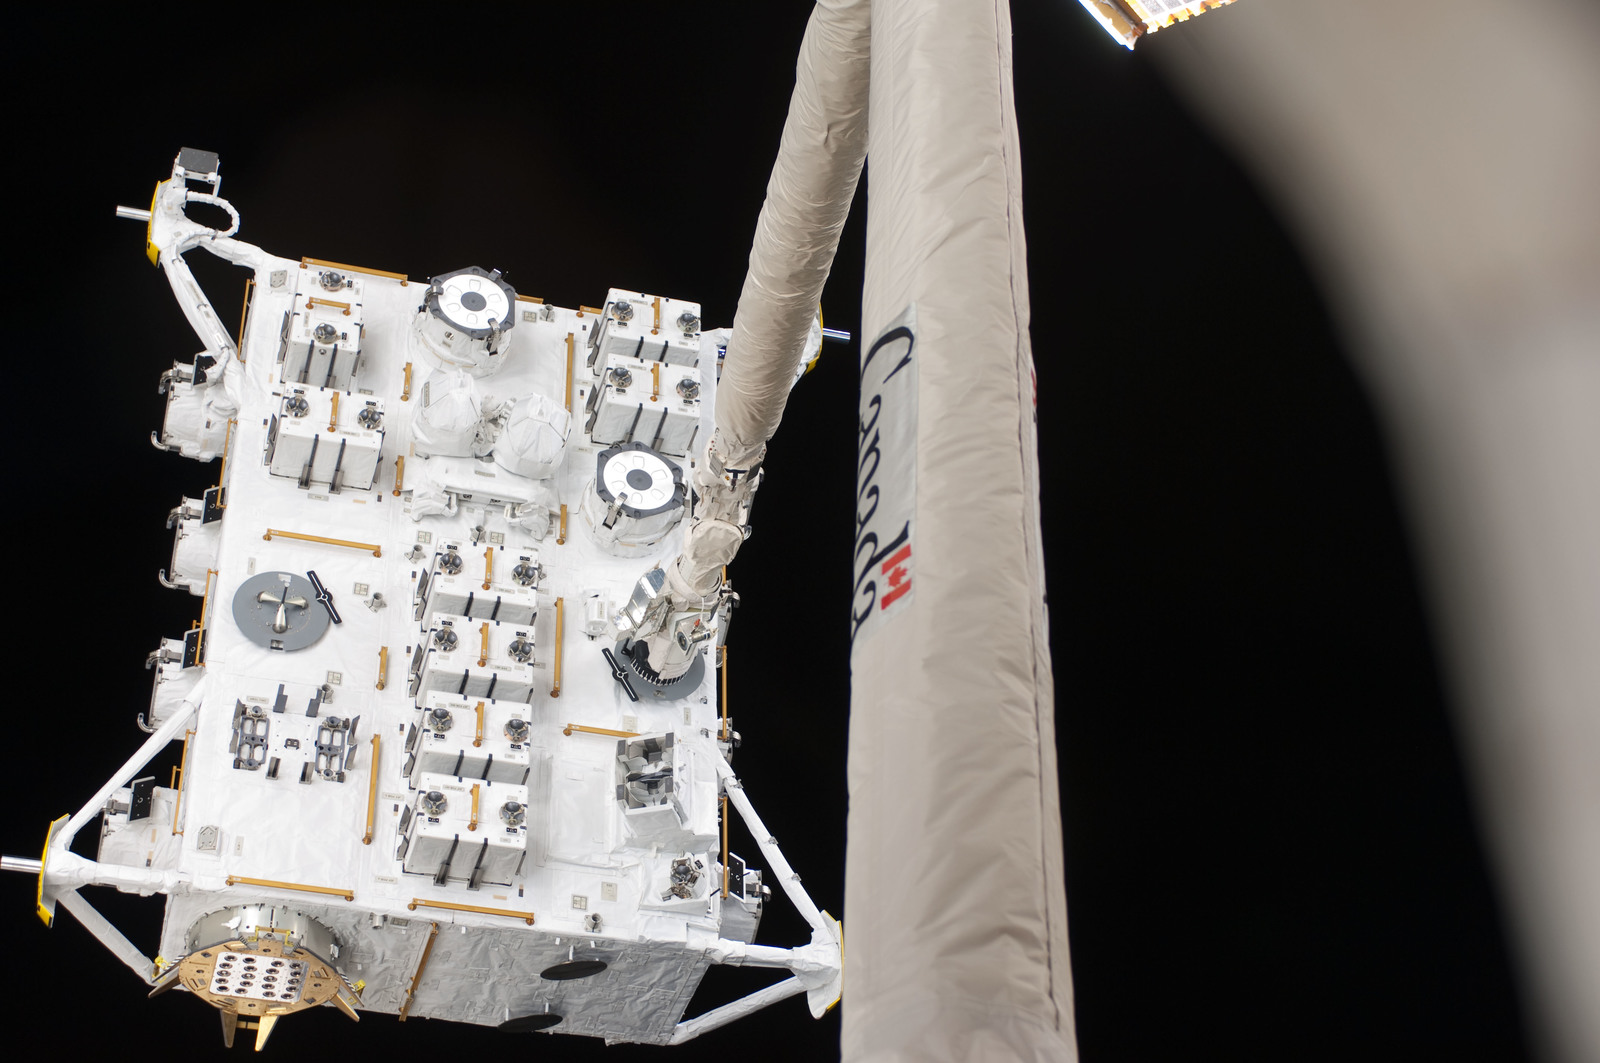 S127E006853 - STS-127 - SRMS moves JEF during EVA-1 on STS-127 / Expedition 20 Joint Operations